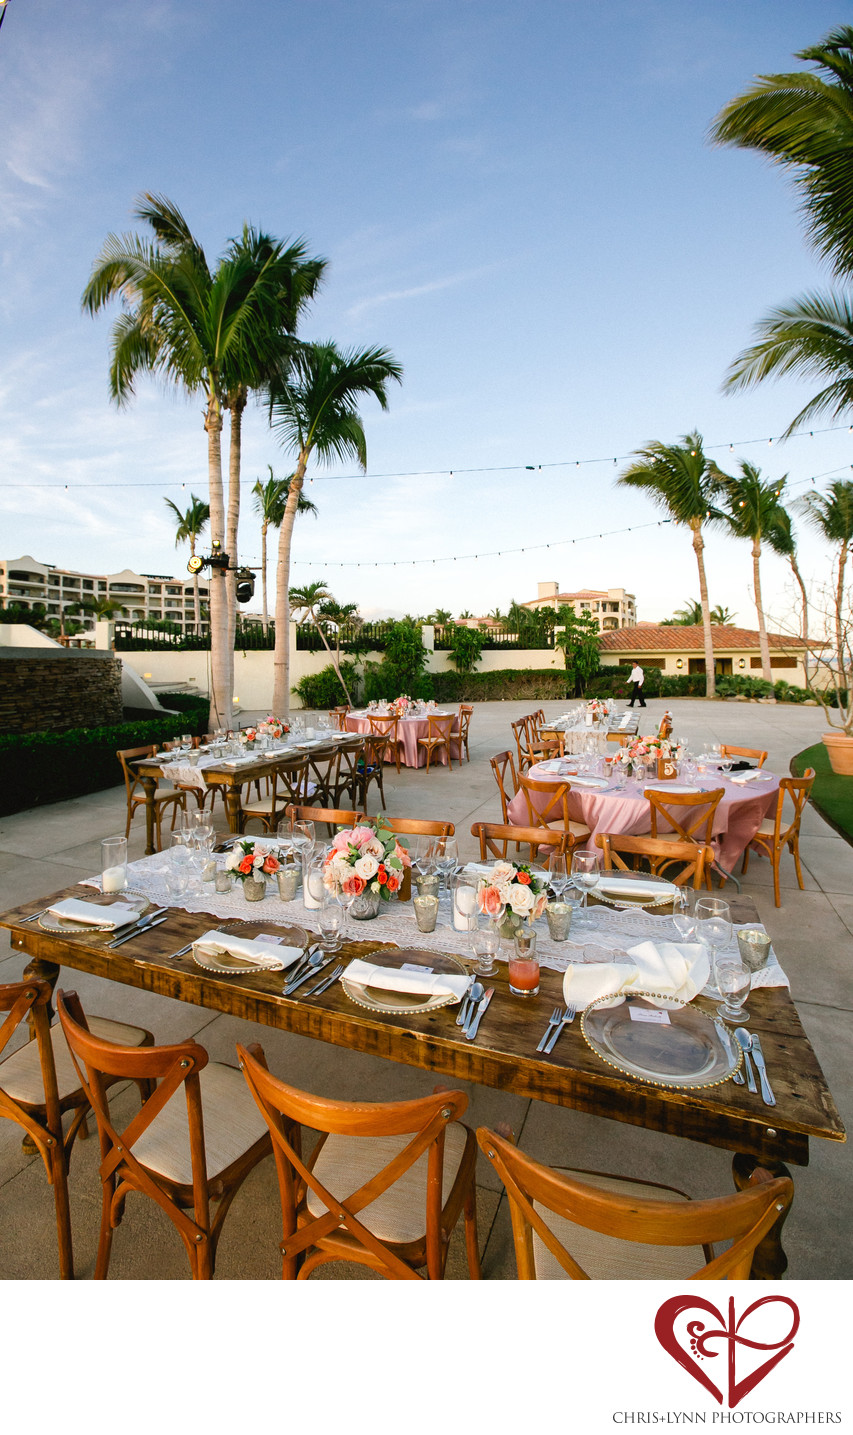 Club Campestre Beach Wedding Reception, Tablescapes